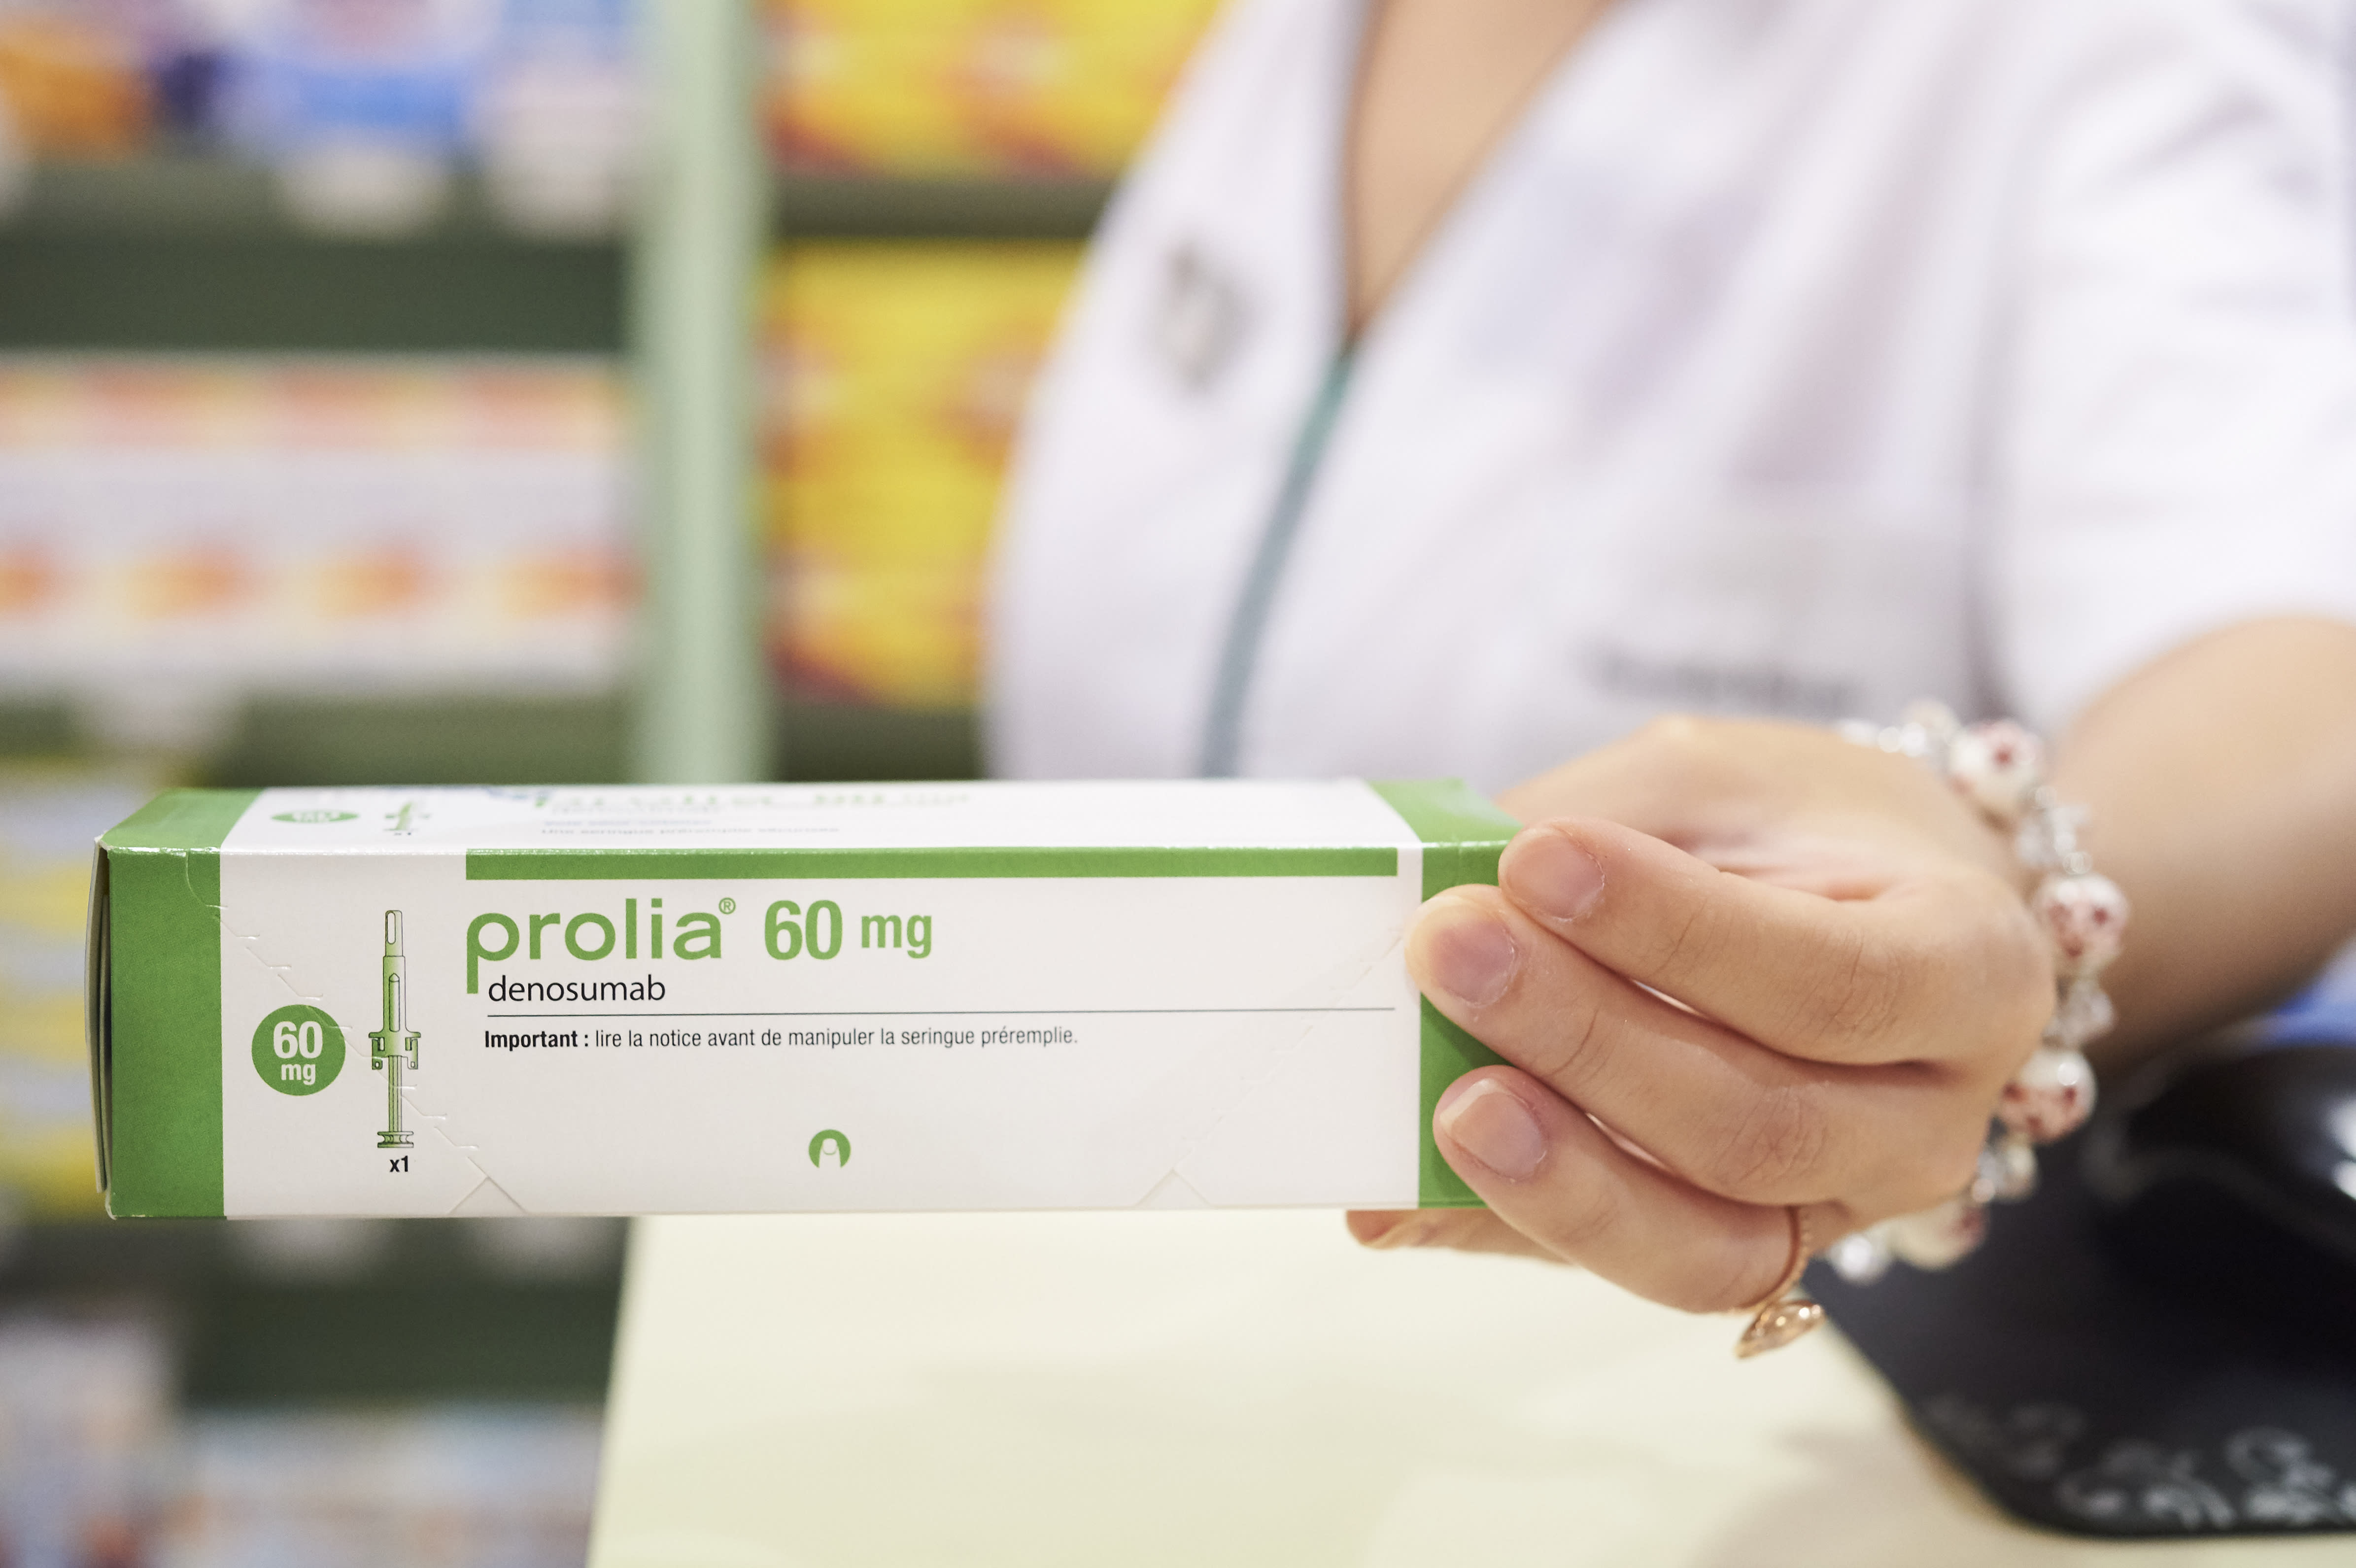 Here's how you can find the prices of some popular drugs online